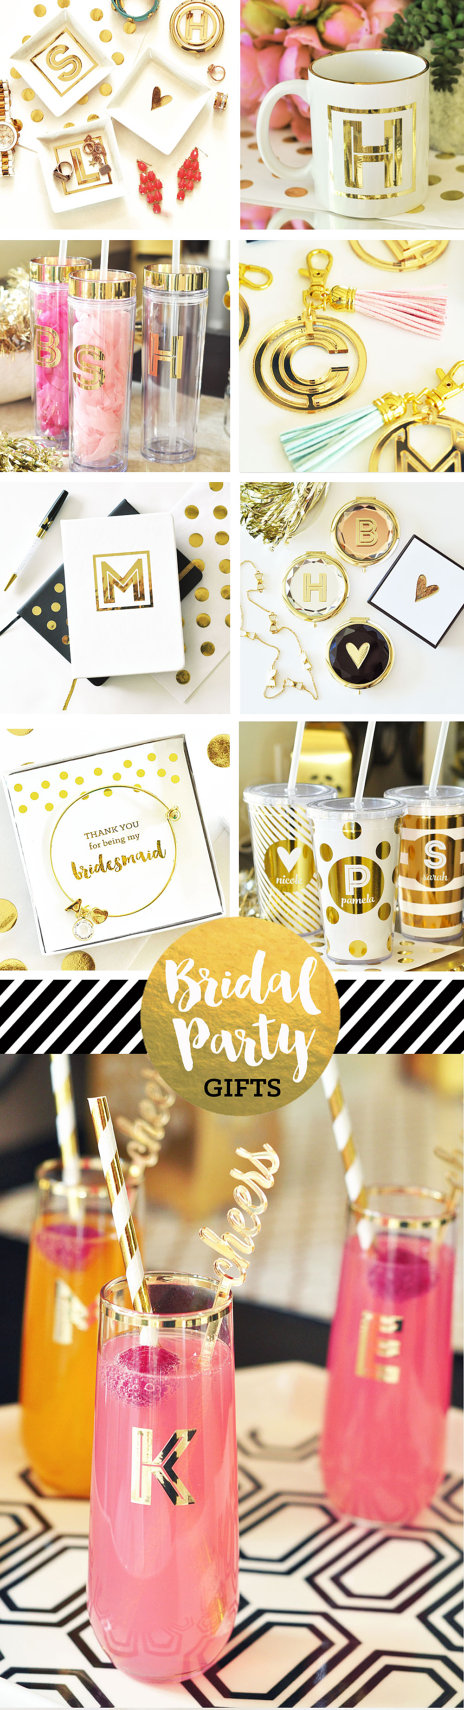 Stemless Champagne Flutes make the perfect Bridesmaid Gift Ideas for your stylish friends! These metallic gold Monogram Glasses are perfect to use at bridal showers, bachelorette parties, or the morning of the wedding! Glasses can double as seating cards & drinking glasses! Your girls will love these and use them well beyond the wedding day - they also make the perfect gift of toasting glasses for the Mr. & Mrs. or give a set as a housewarming gift for the newlyweds with their new monogram…